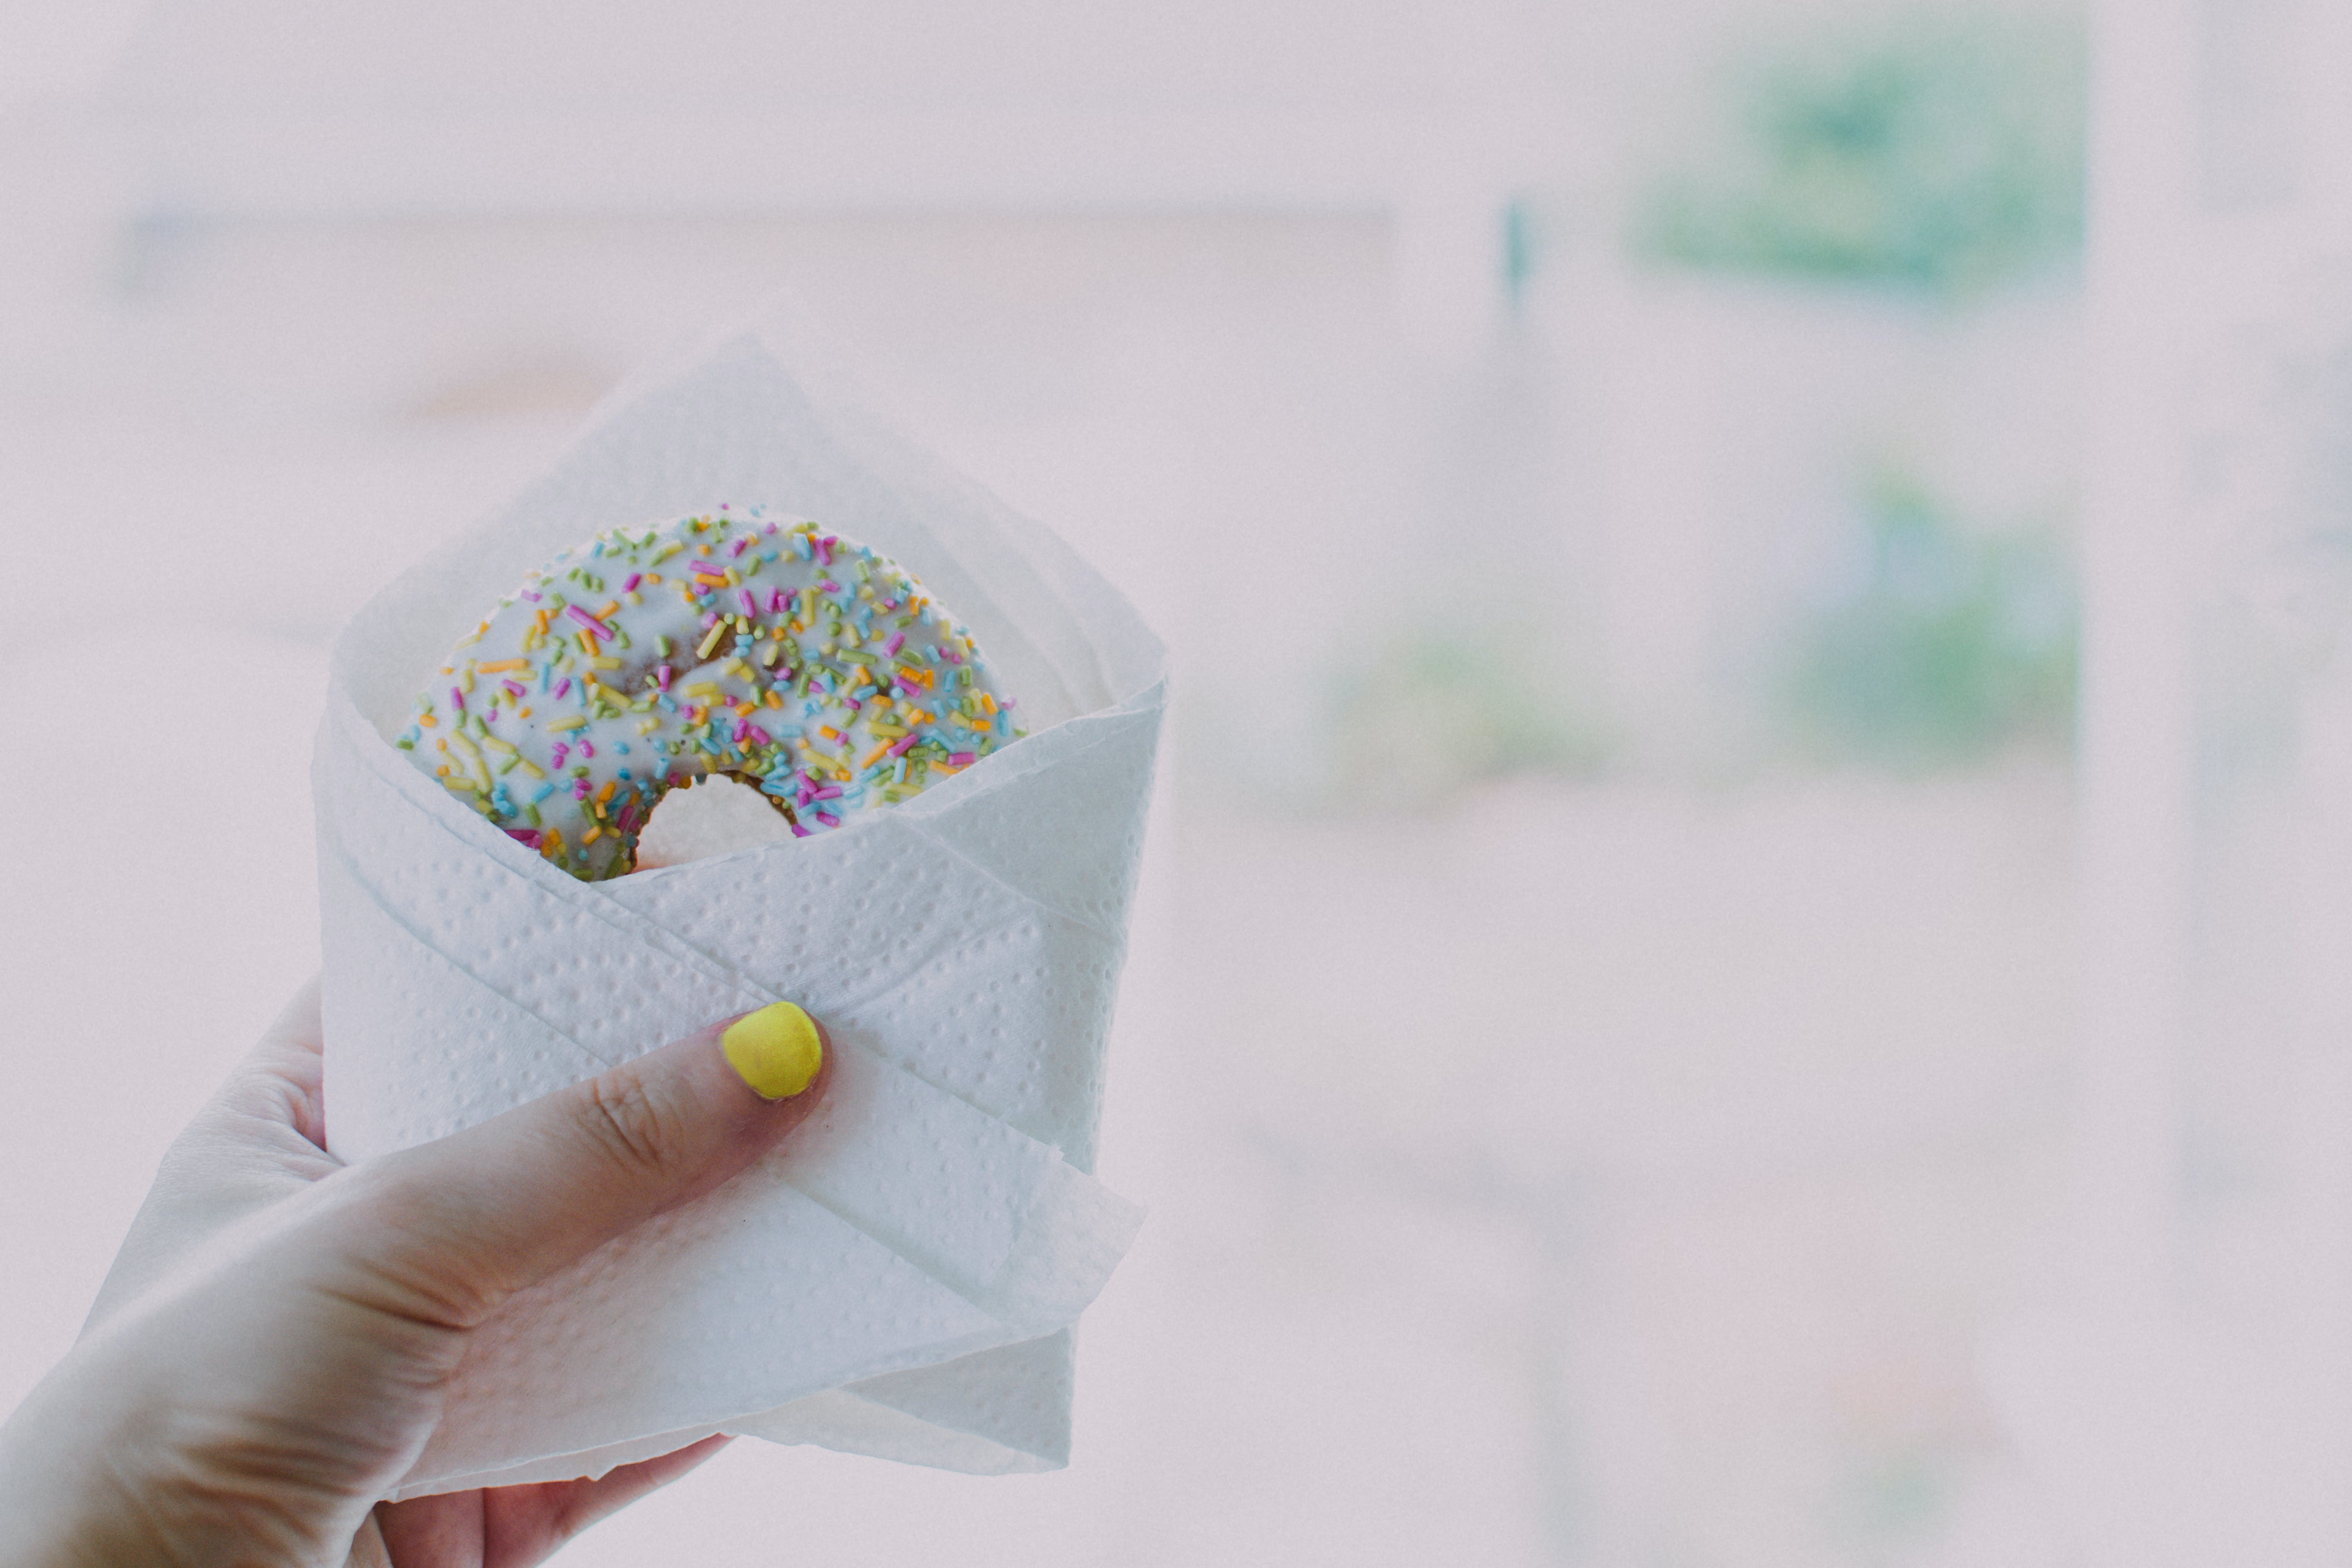 Woman Holding Doughnut With Sprinkles